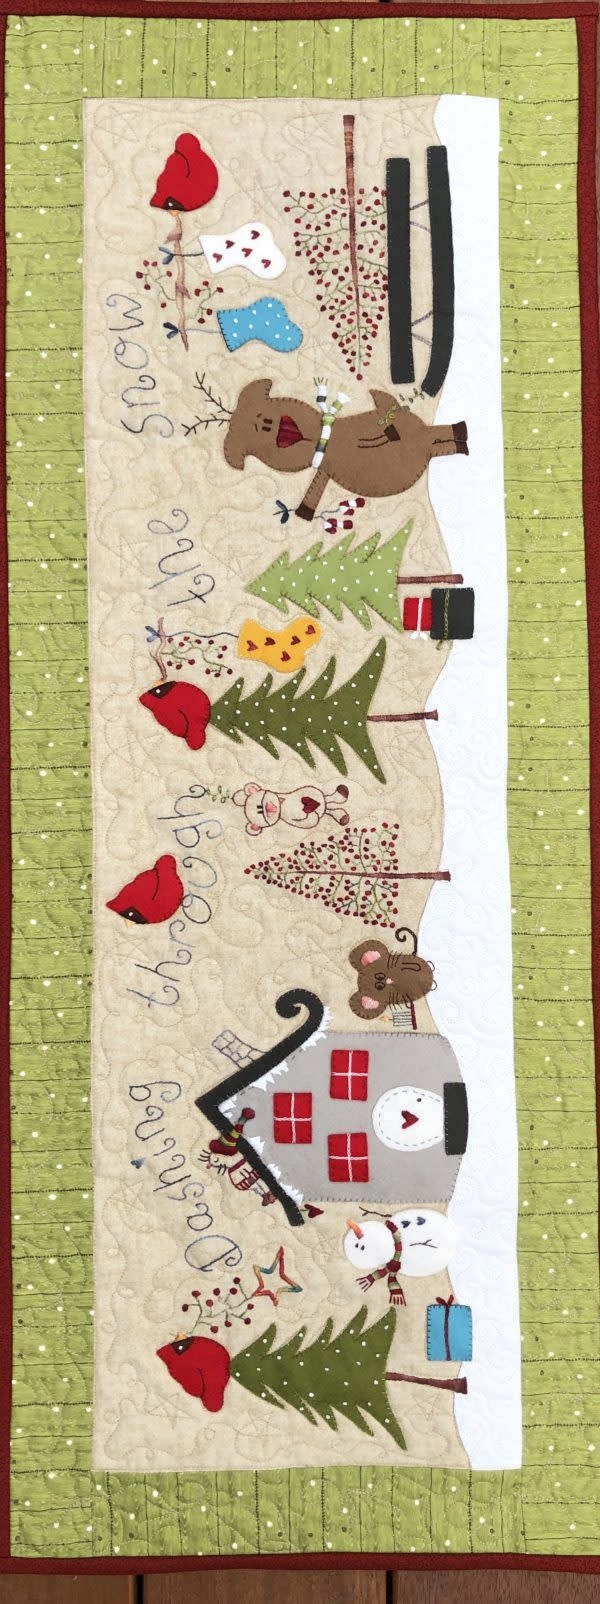 Fig 'n' Berry Creations Dashing Through the Snow - Patroon